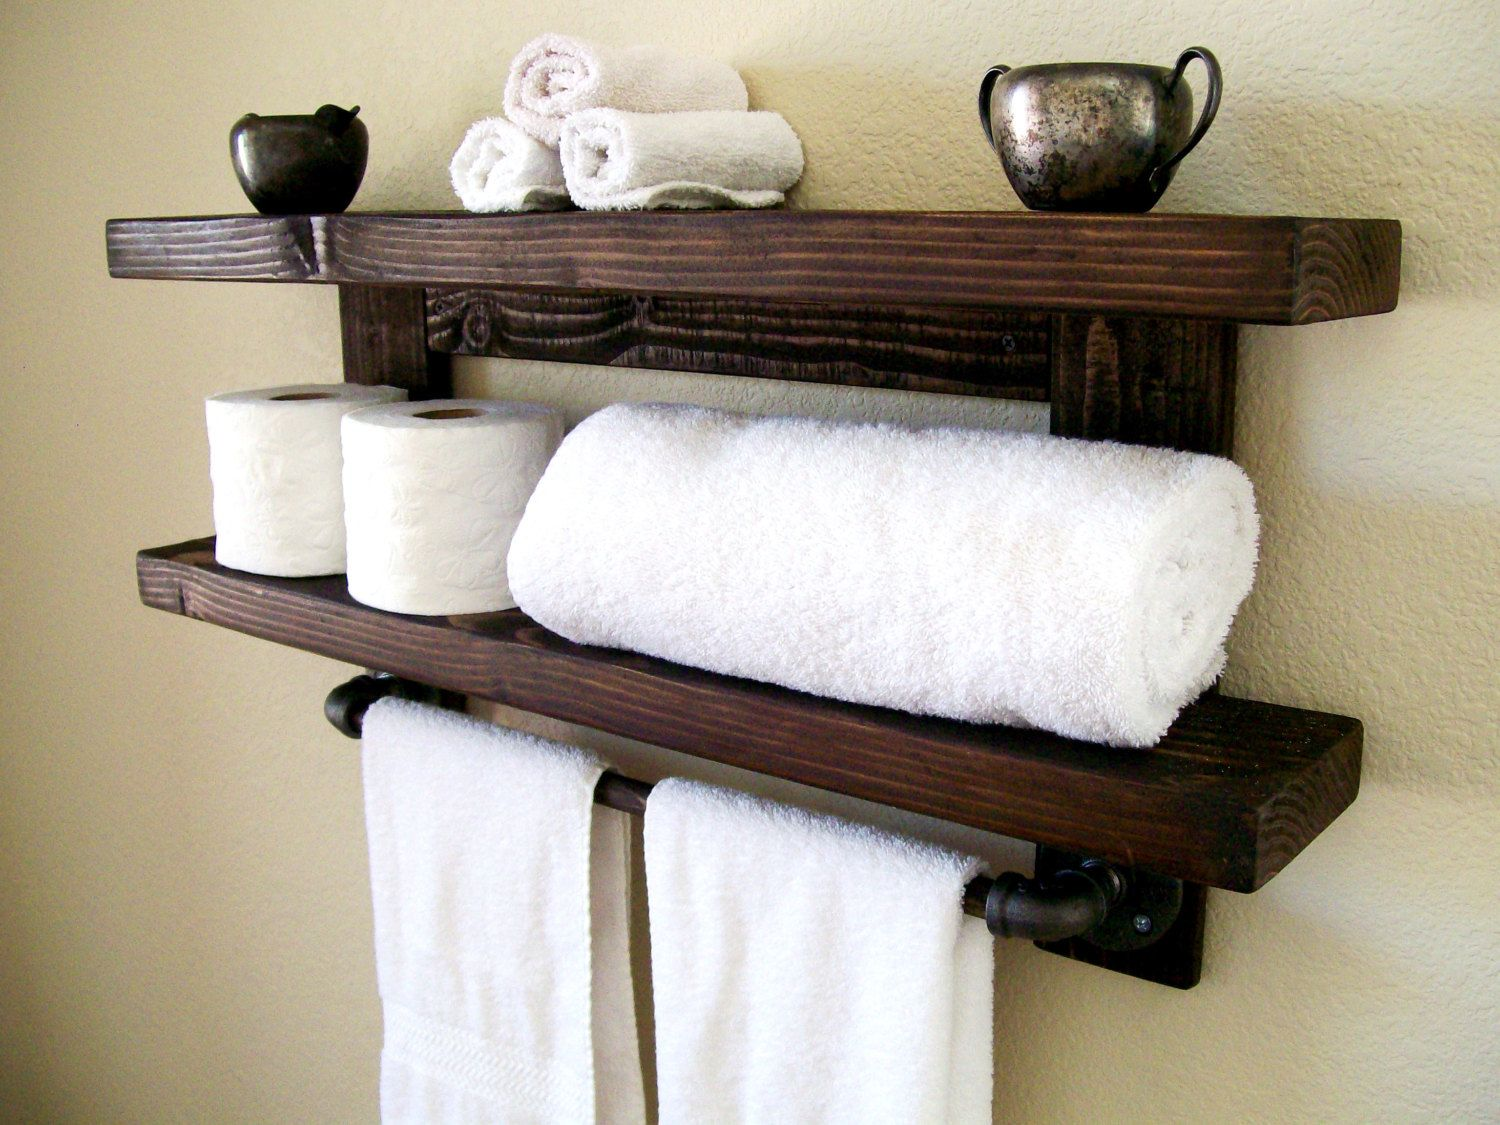 Bathroom Classic Wooden Bathroom Towel Racks Have White Towel And ...